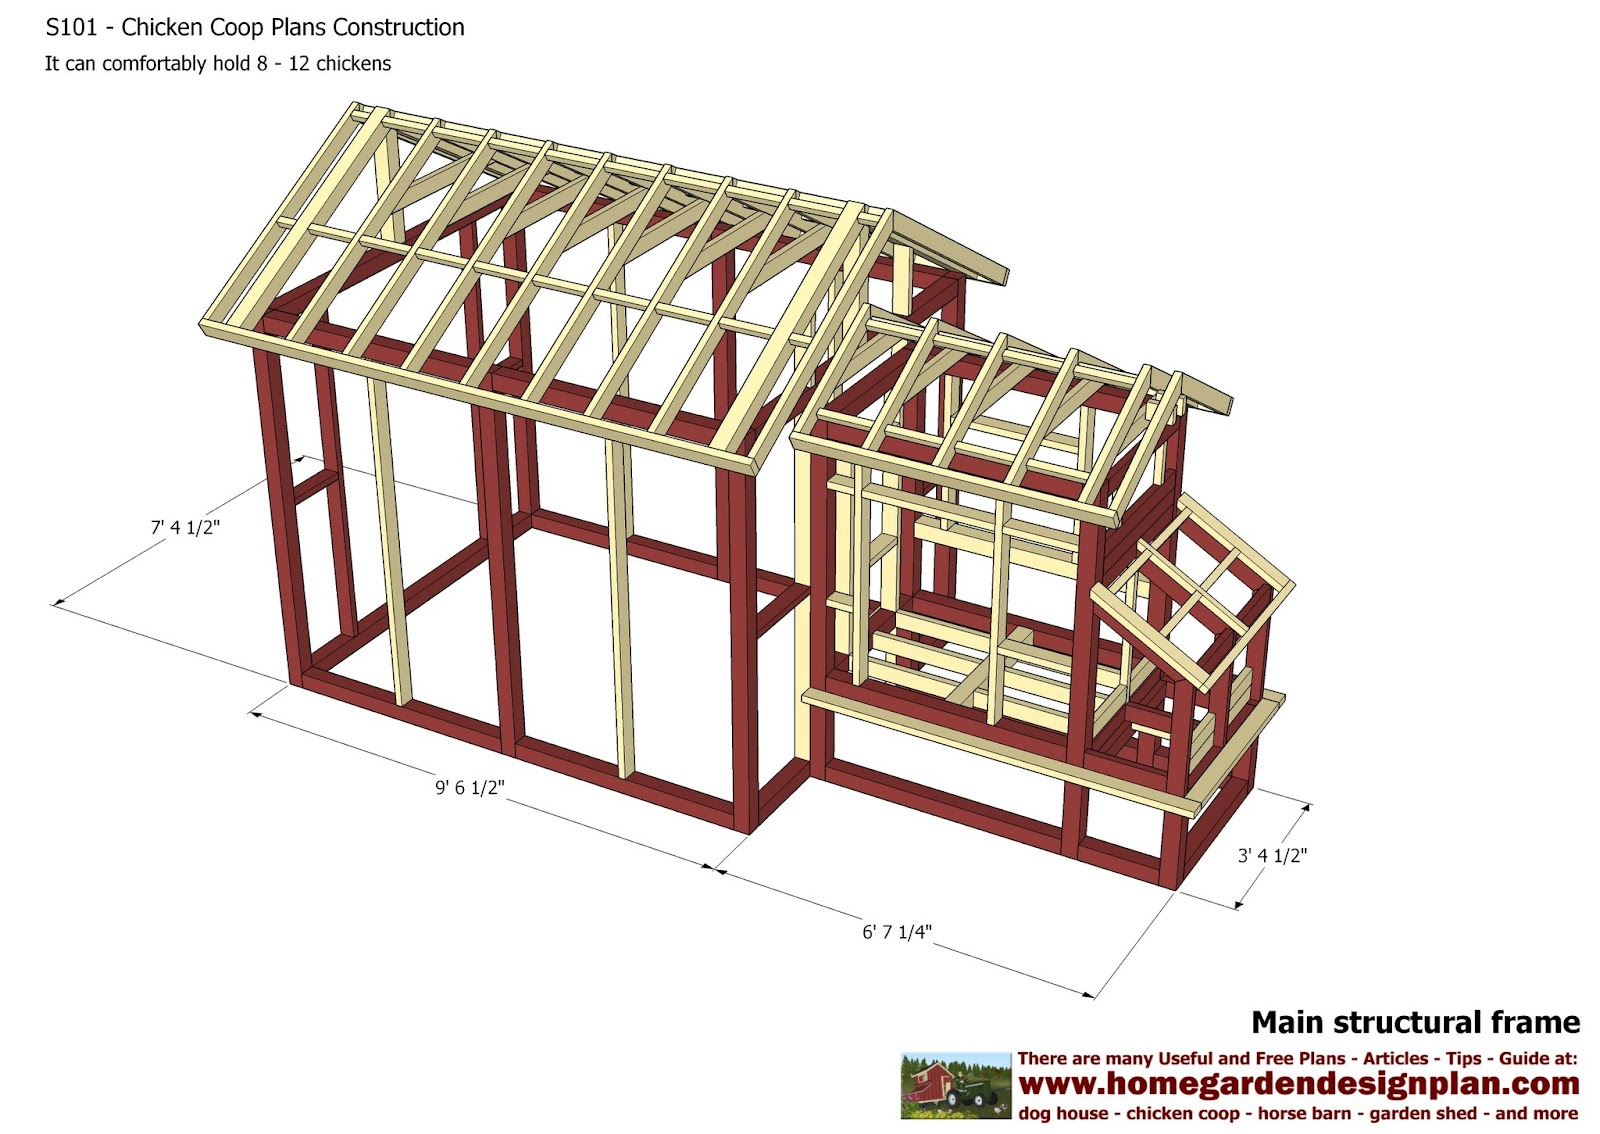 House Construction Plan Of Home Garden Plans S101 Chicken Coop Plans Construction